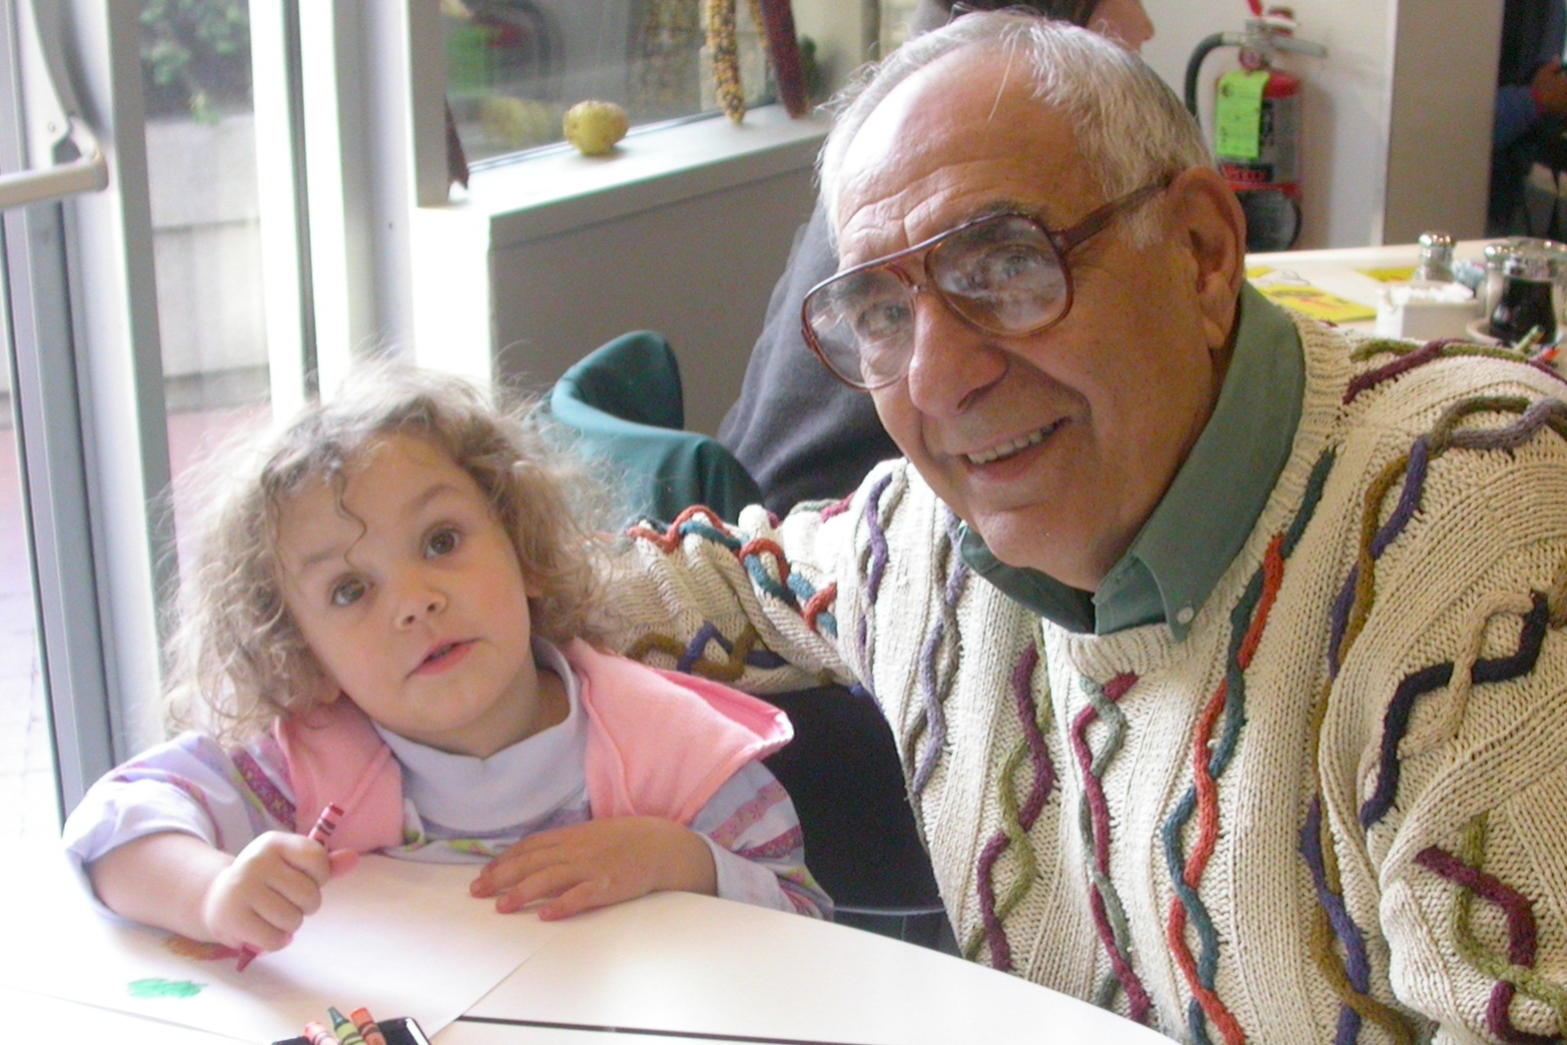 Grandfather and young girl share a moment coloring at a kitchen table, in front of sunny window